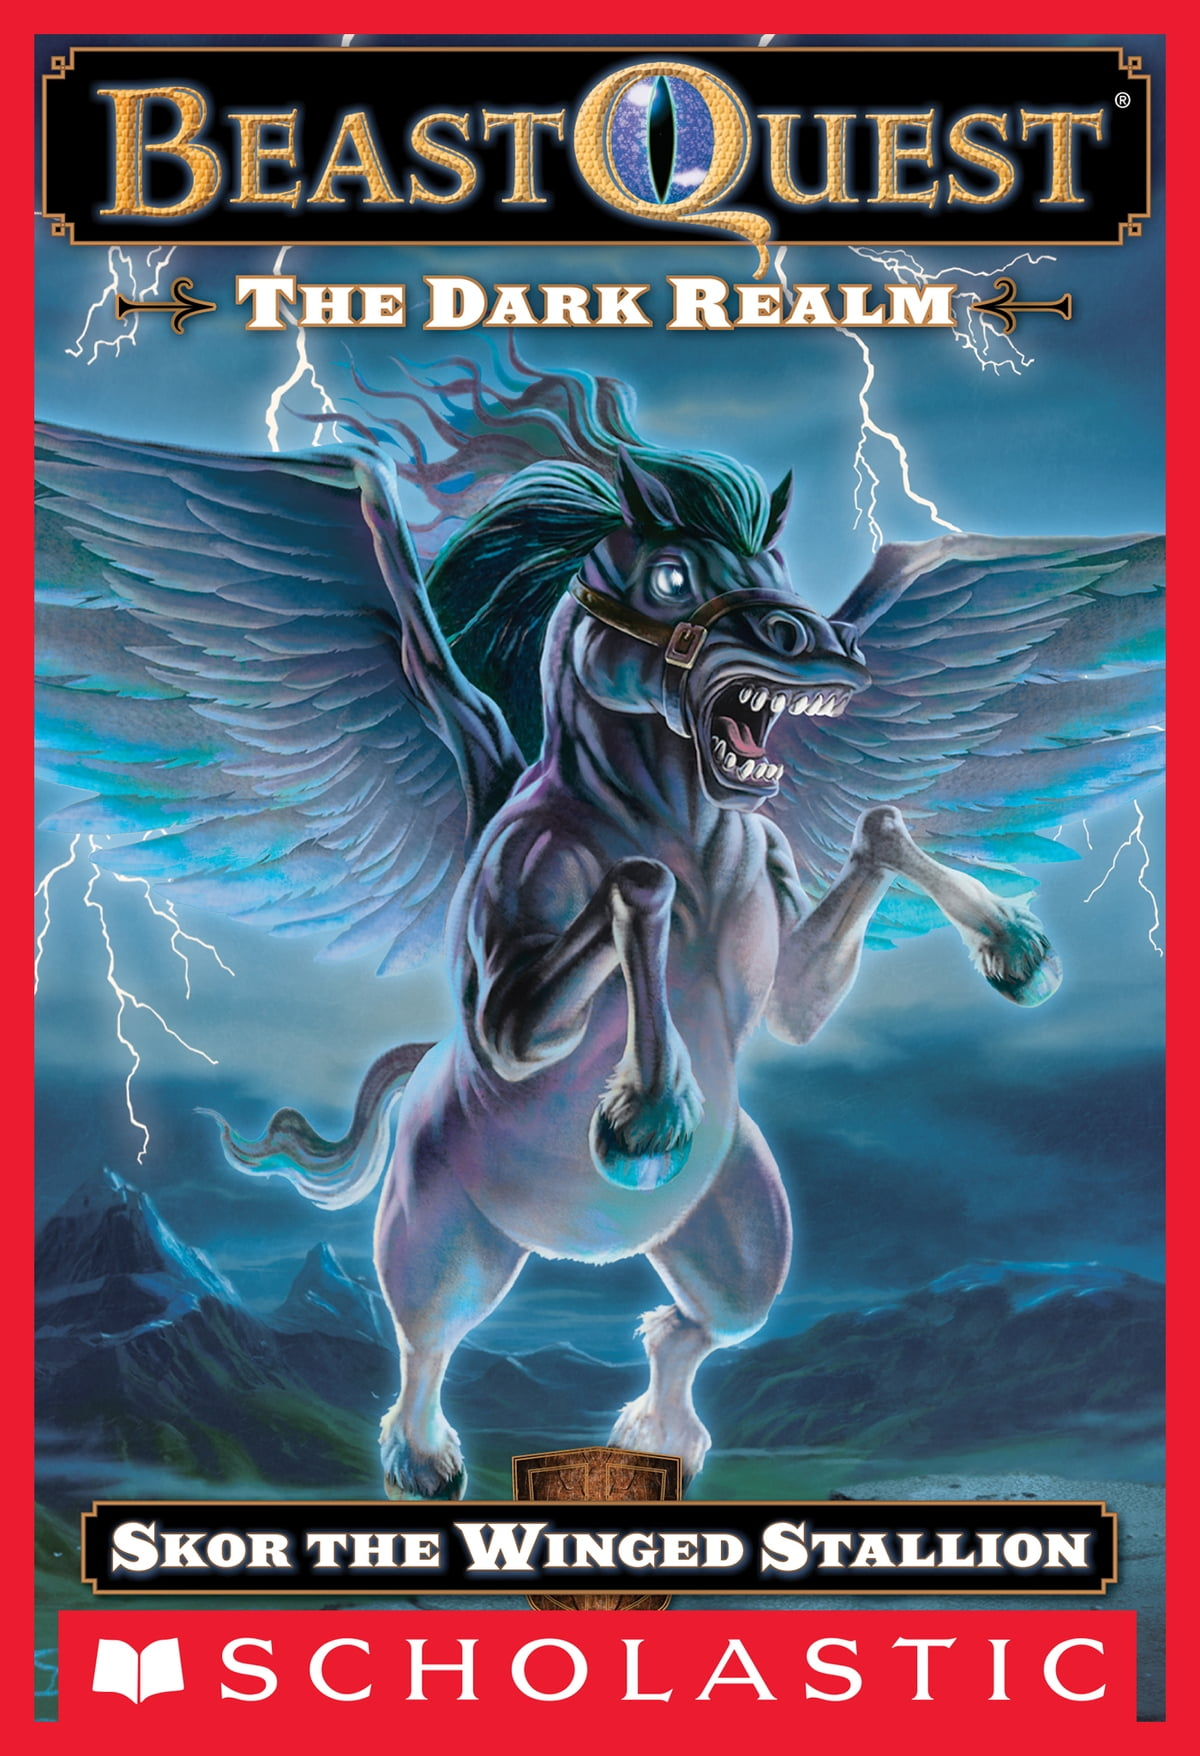 Beast quest 9 soltra the stone charmer ebook by adam blade beast quest 14 the dark realm skor the winged stallion skor the fandeluxe Epub